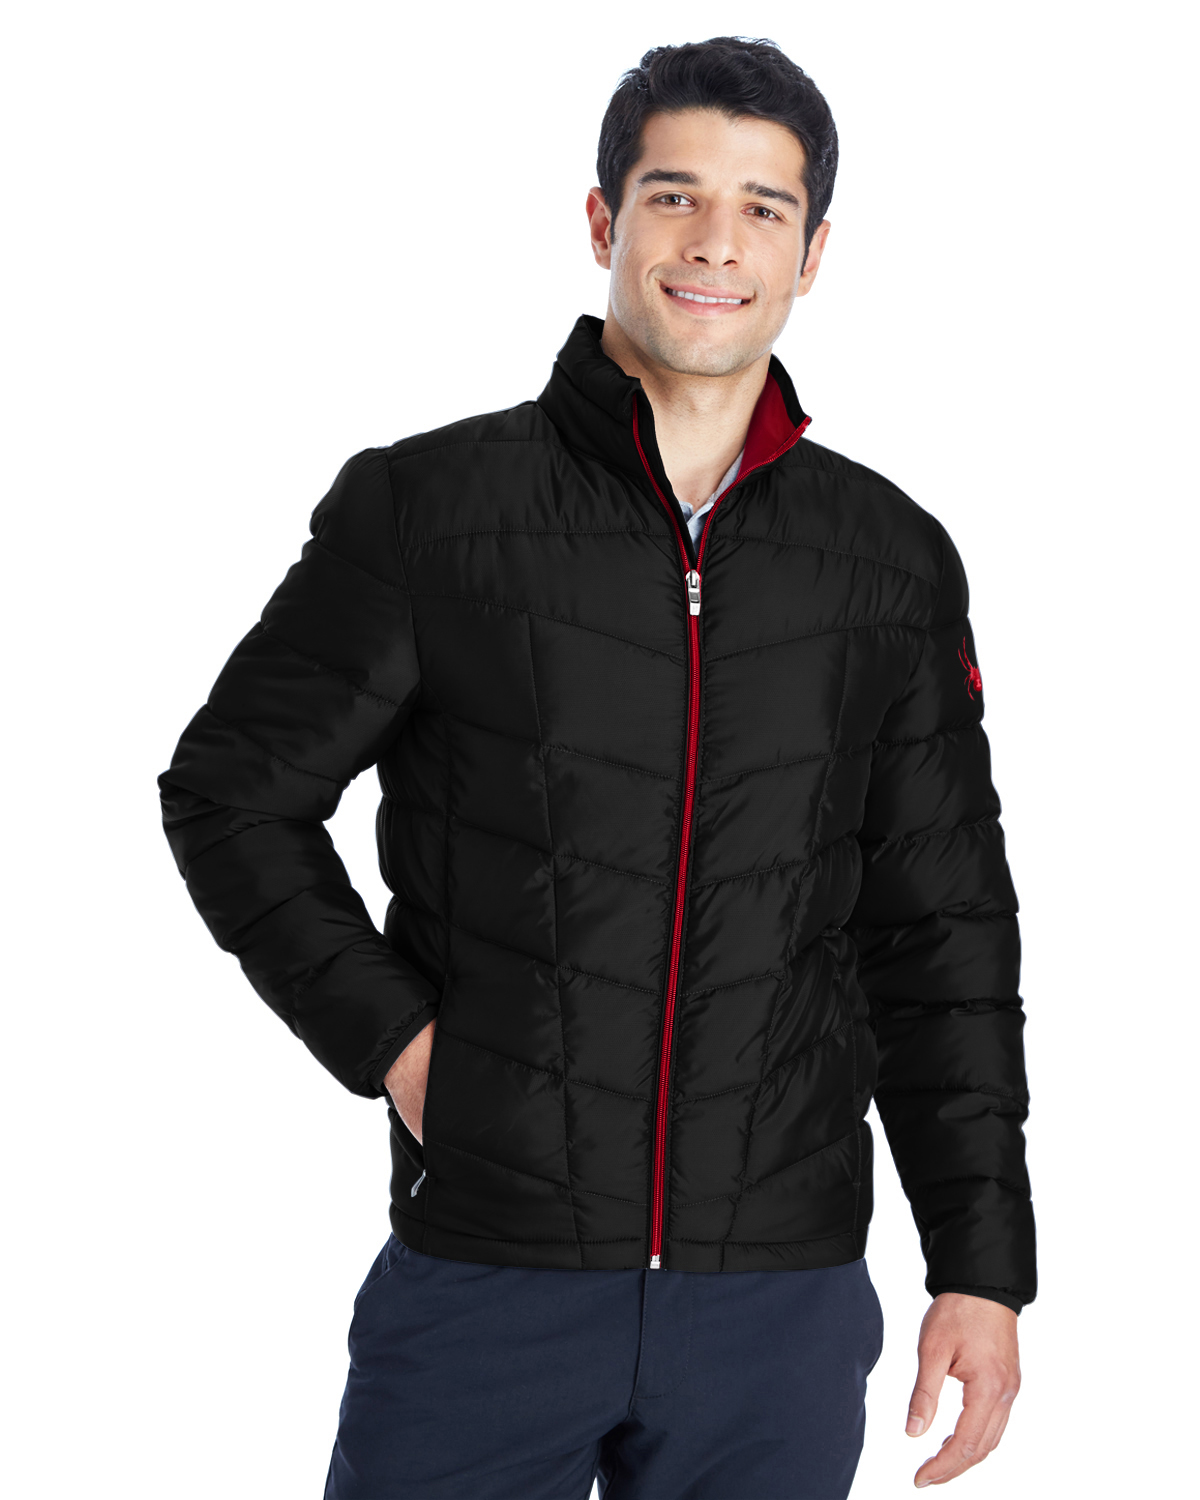 Spyder 187333 - Men's Pelmo Insulated Puffer Jacket